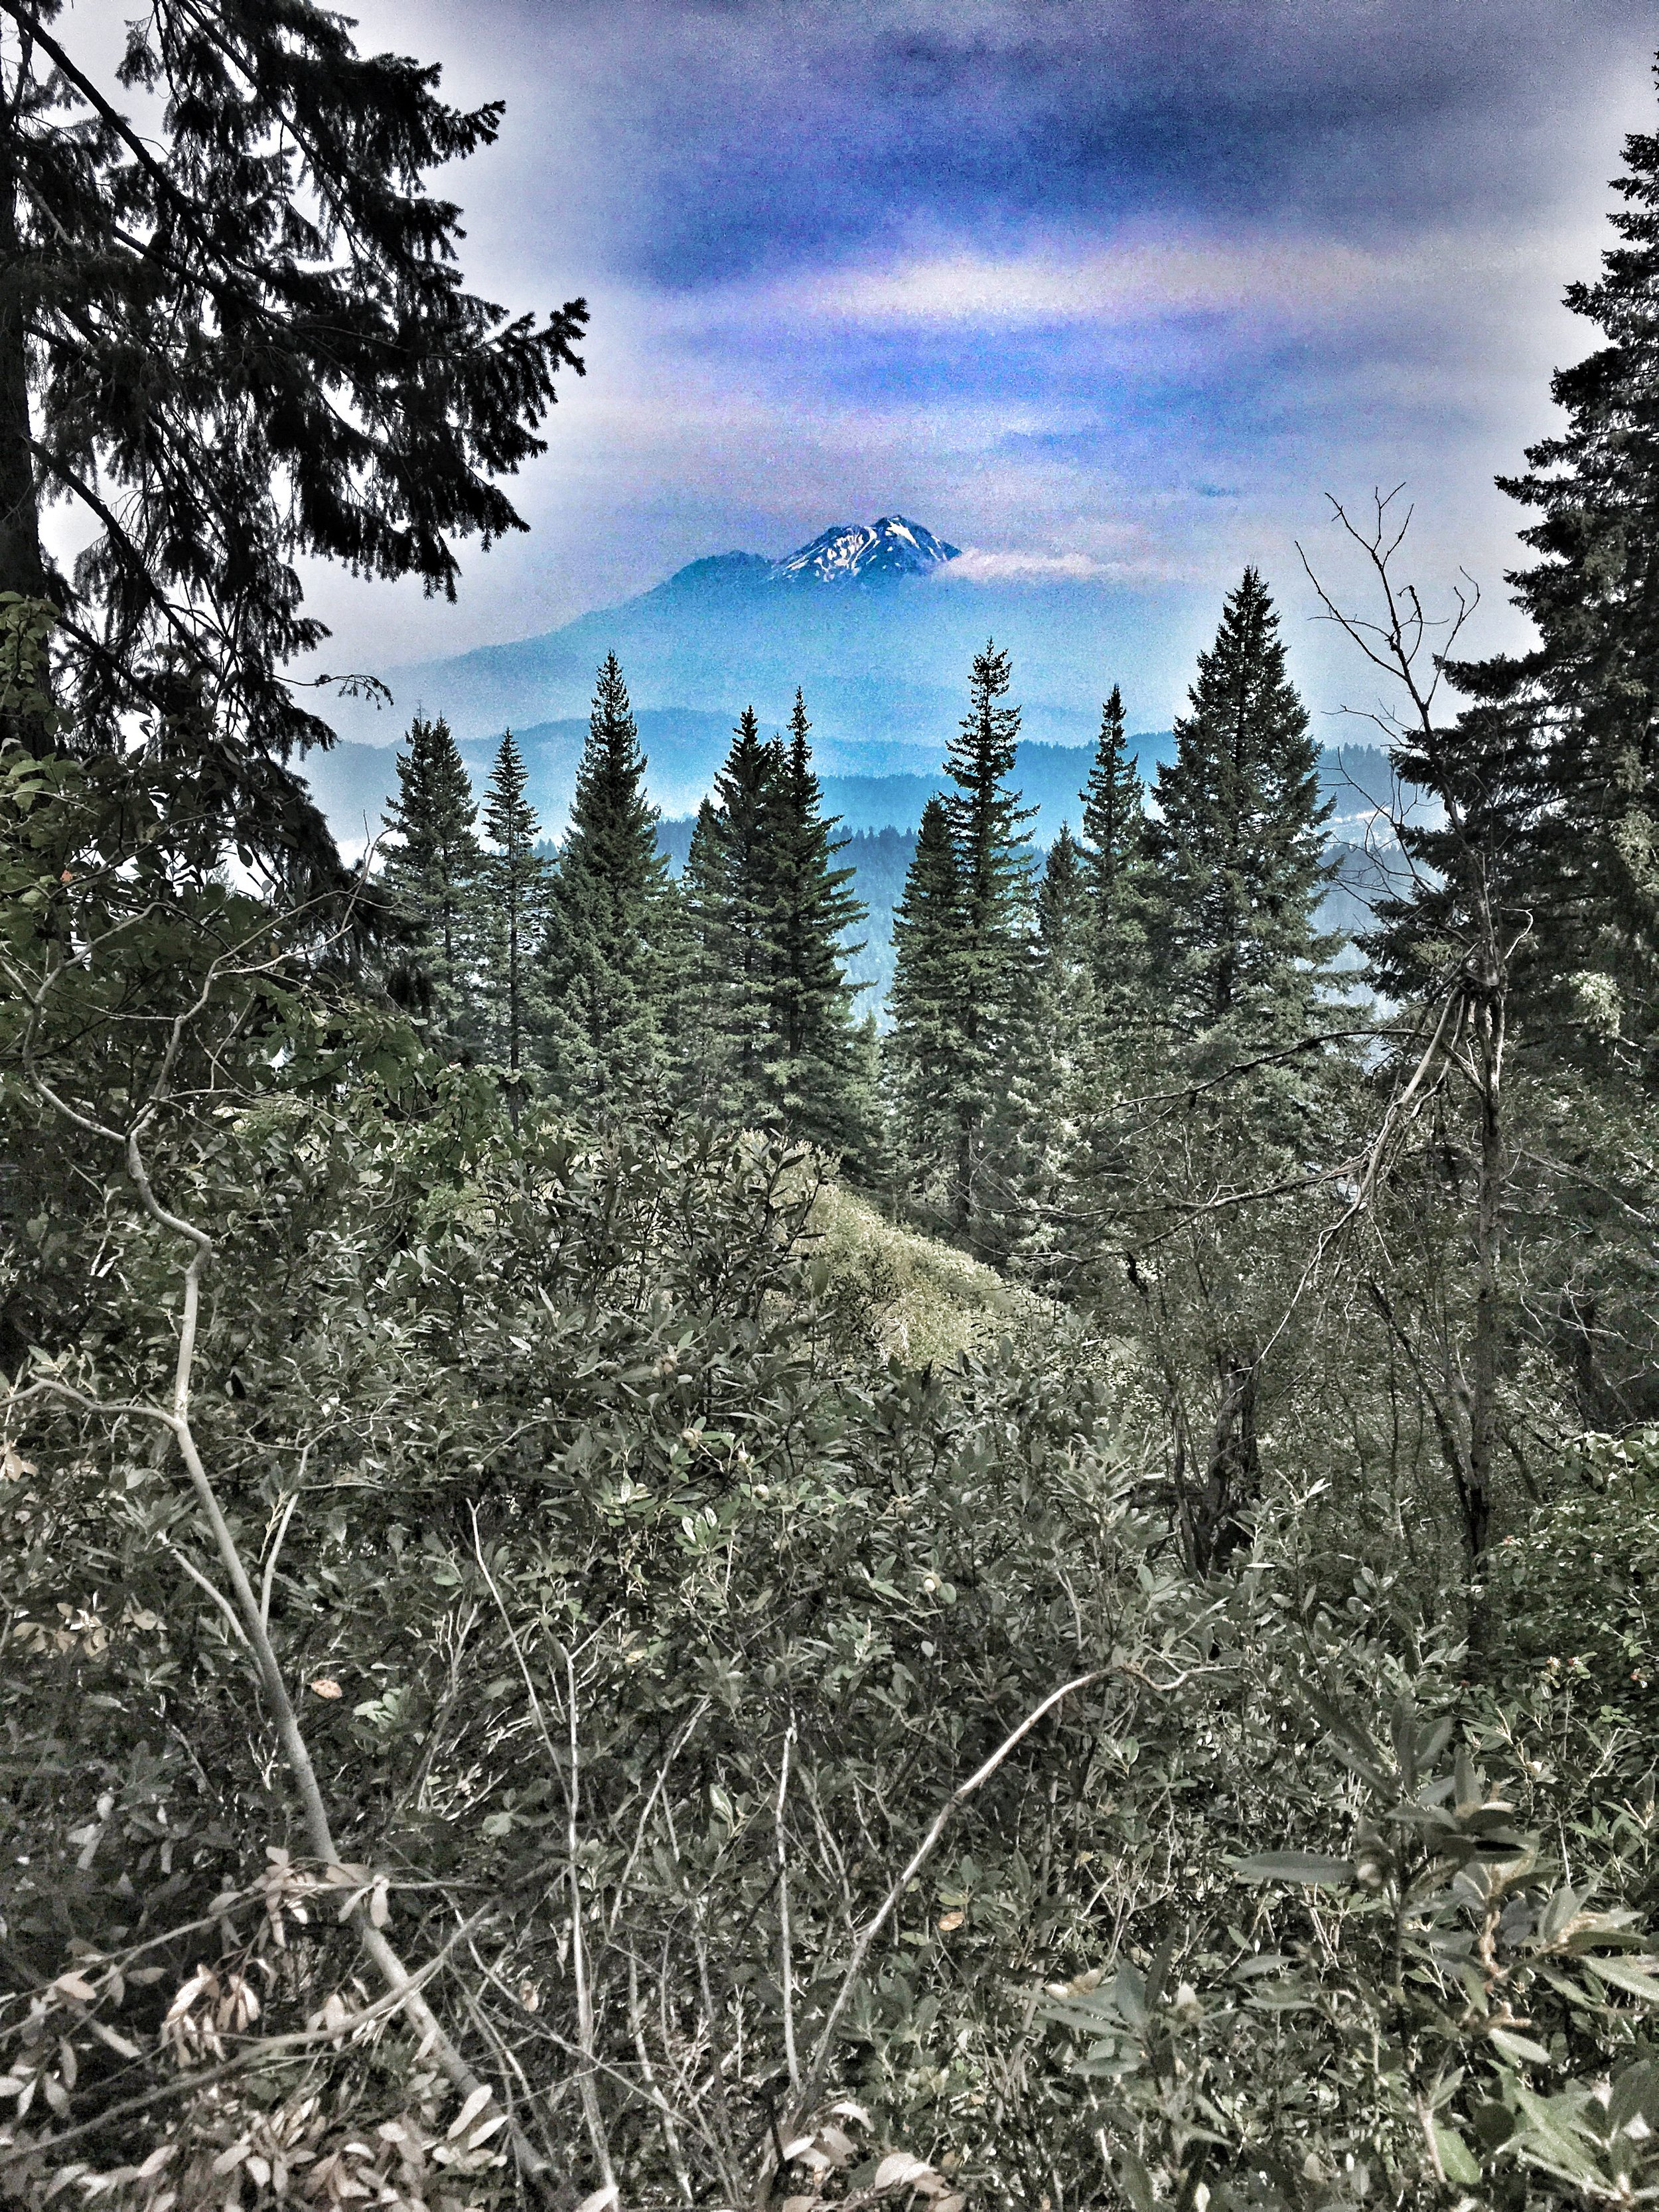 Mt. Shasta emerging from the smoke.